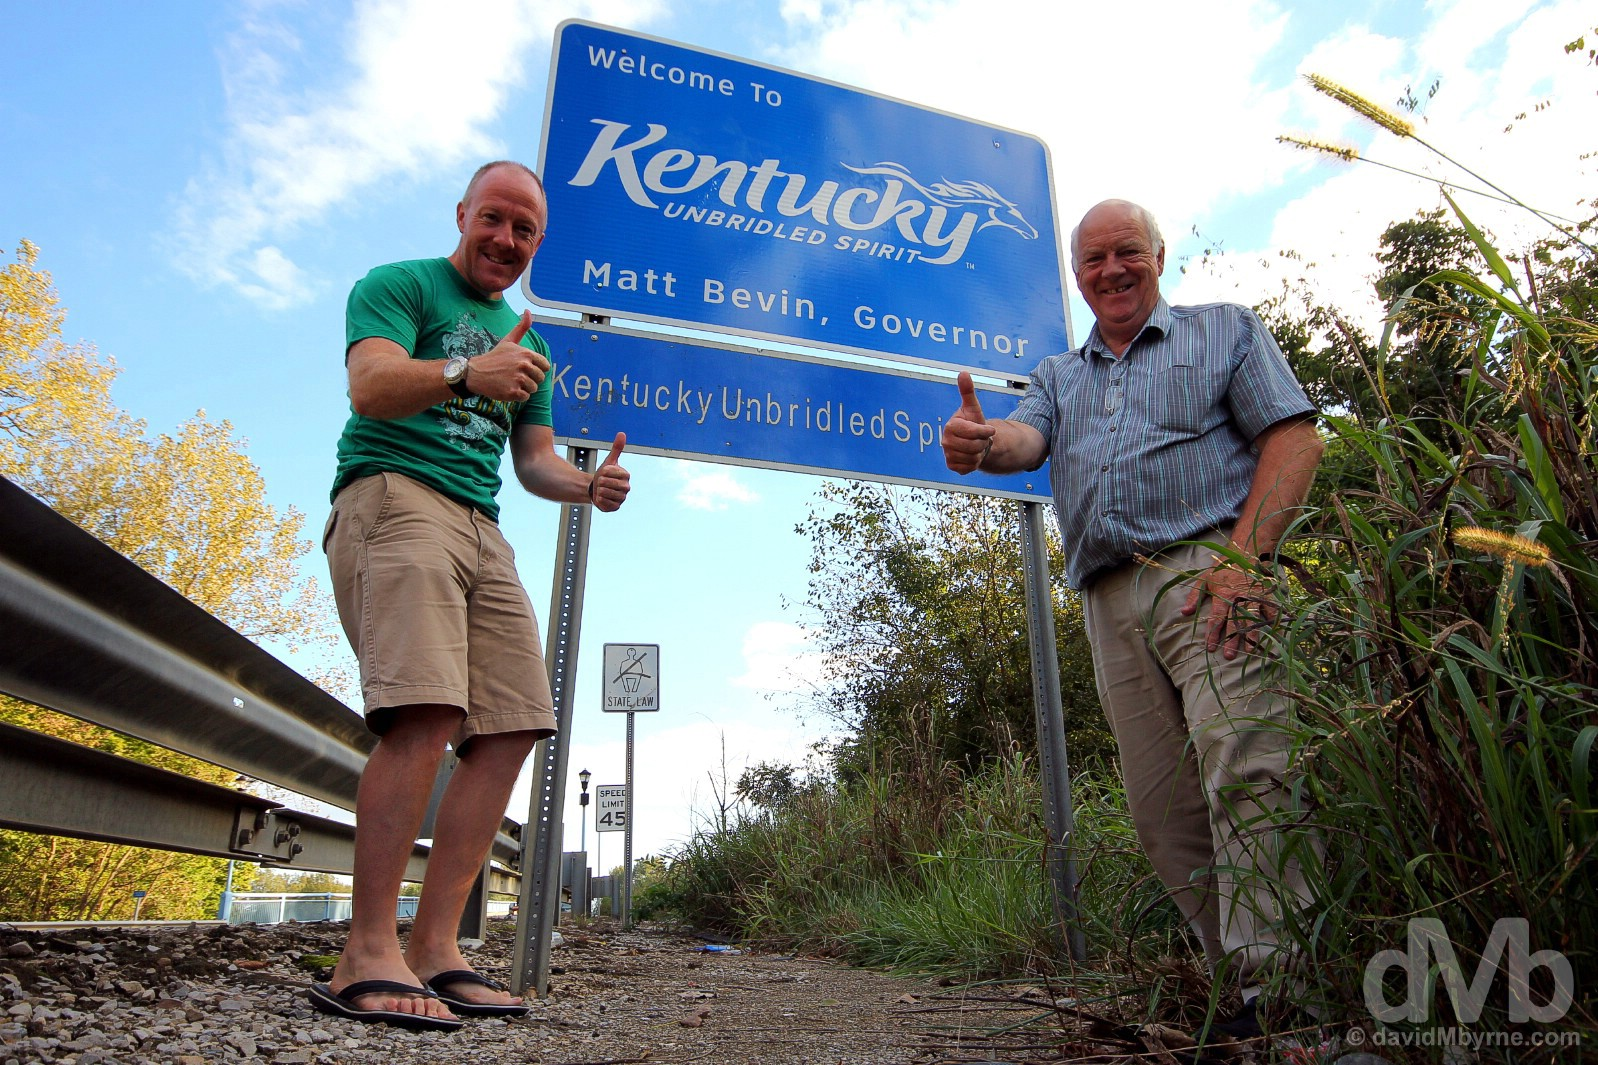 At the Kentucky/Indiana state line on Indiana State Road 161 outside Owensboro, Kentucky, USA. September 28, 2016.